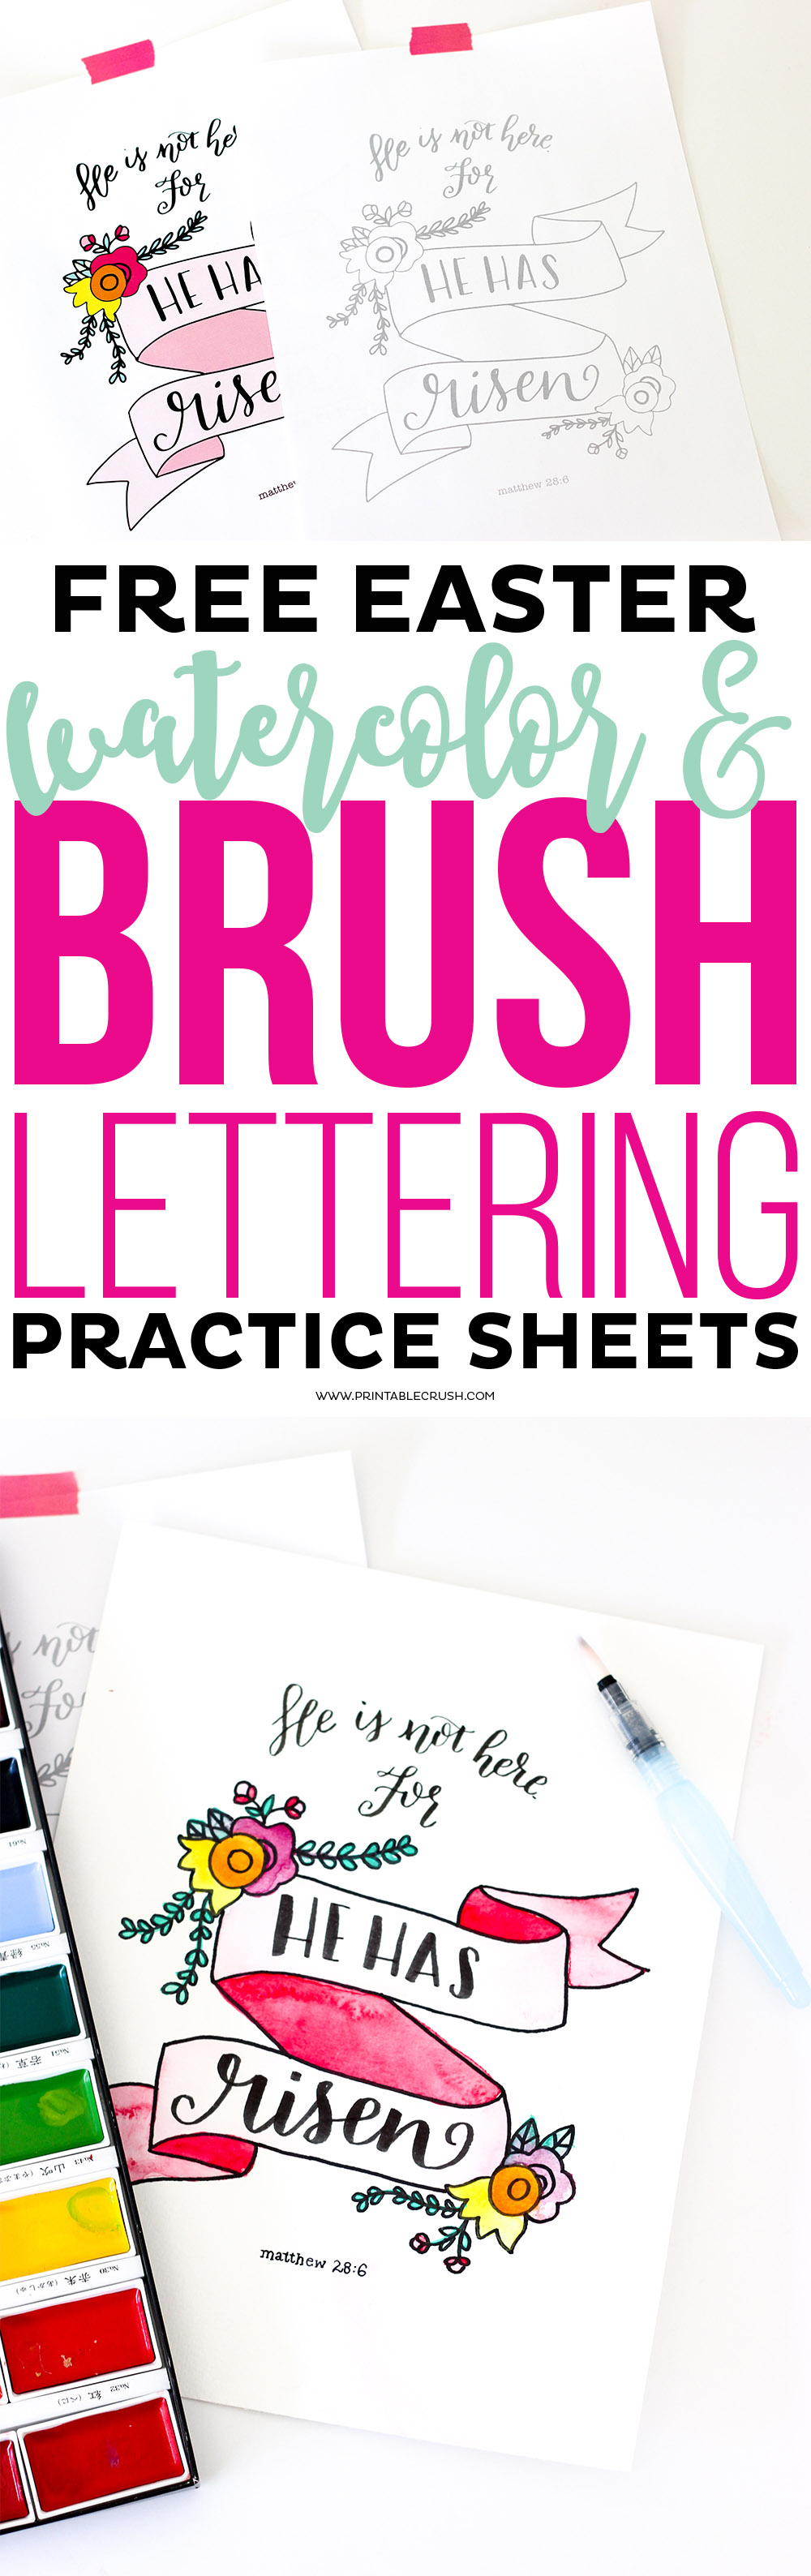 Download these FREE Easter Watercolor and Brush Lettering Practice Sheets so you can work with multiple mediums! It turns out GORGEOUS!